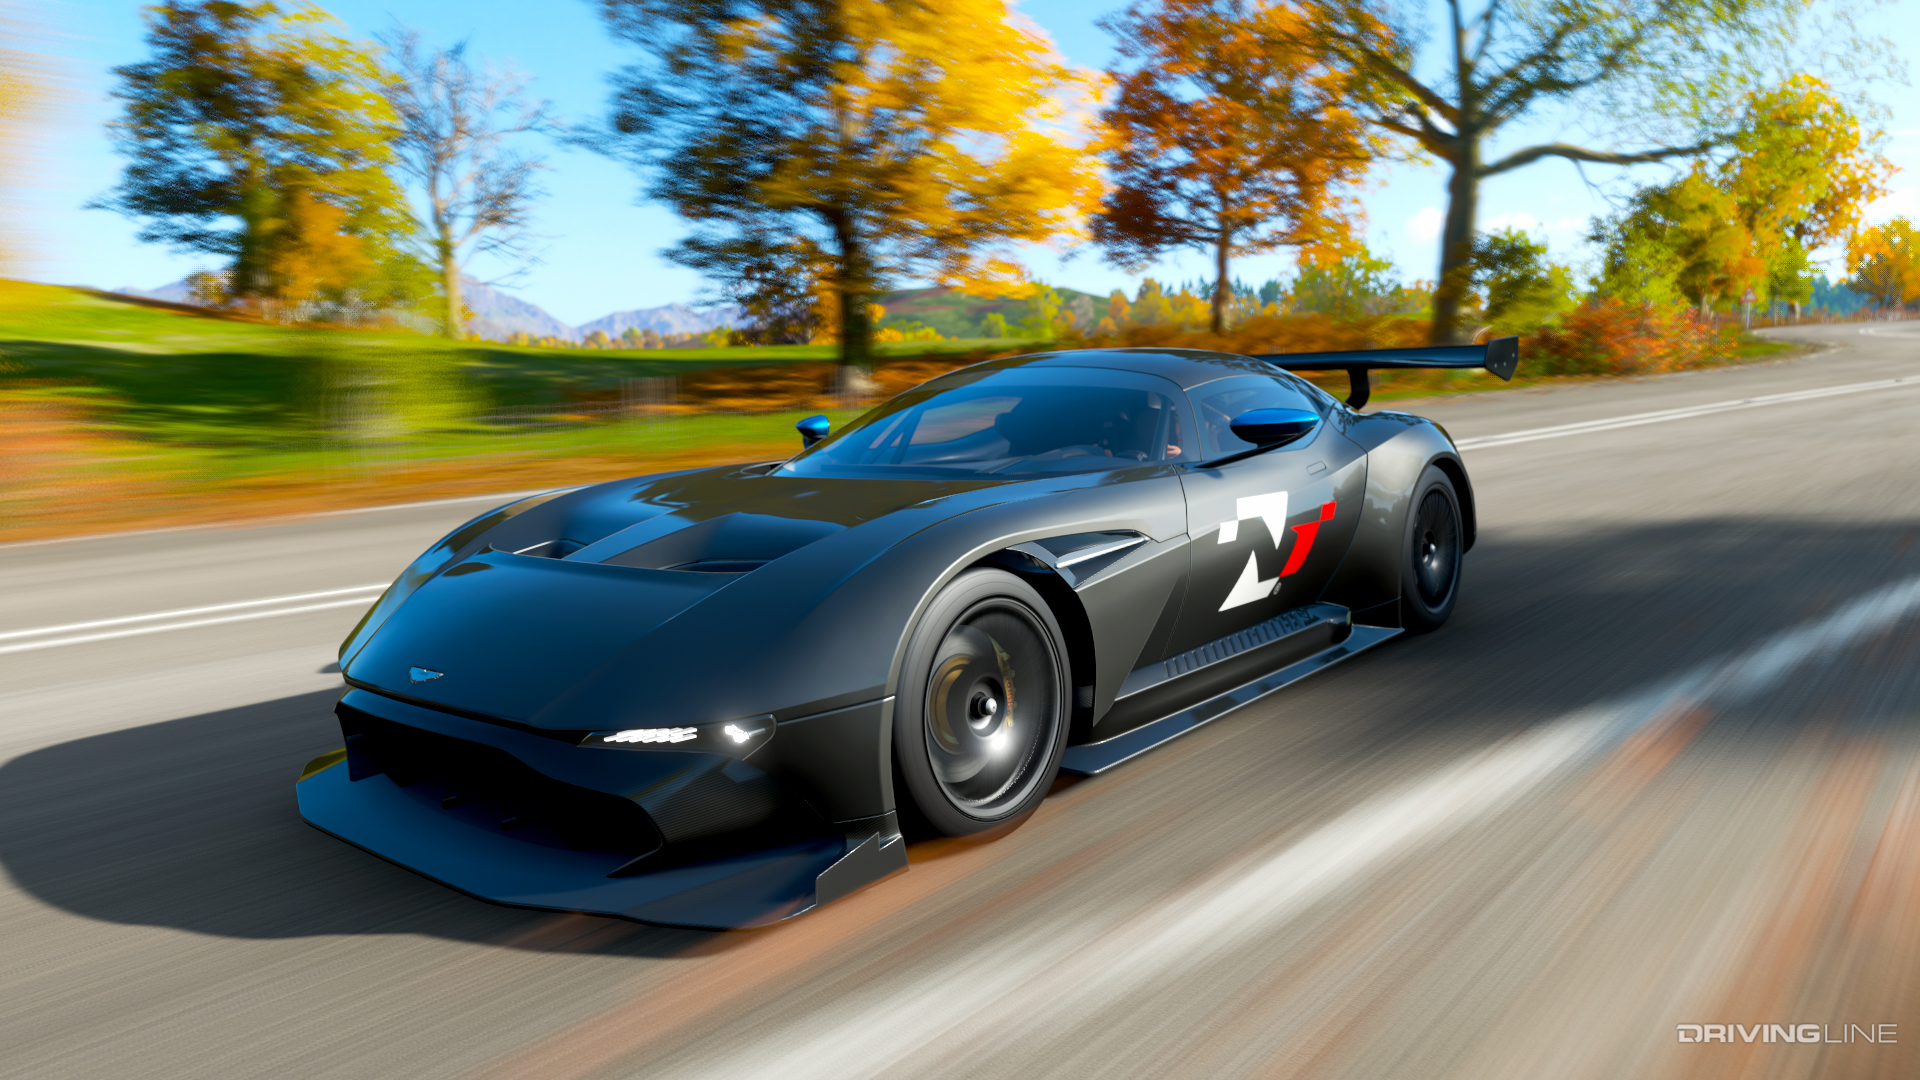 5 Best Expensive Cars In Forza Horizon 4 Drivingline